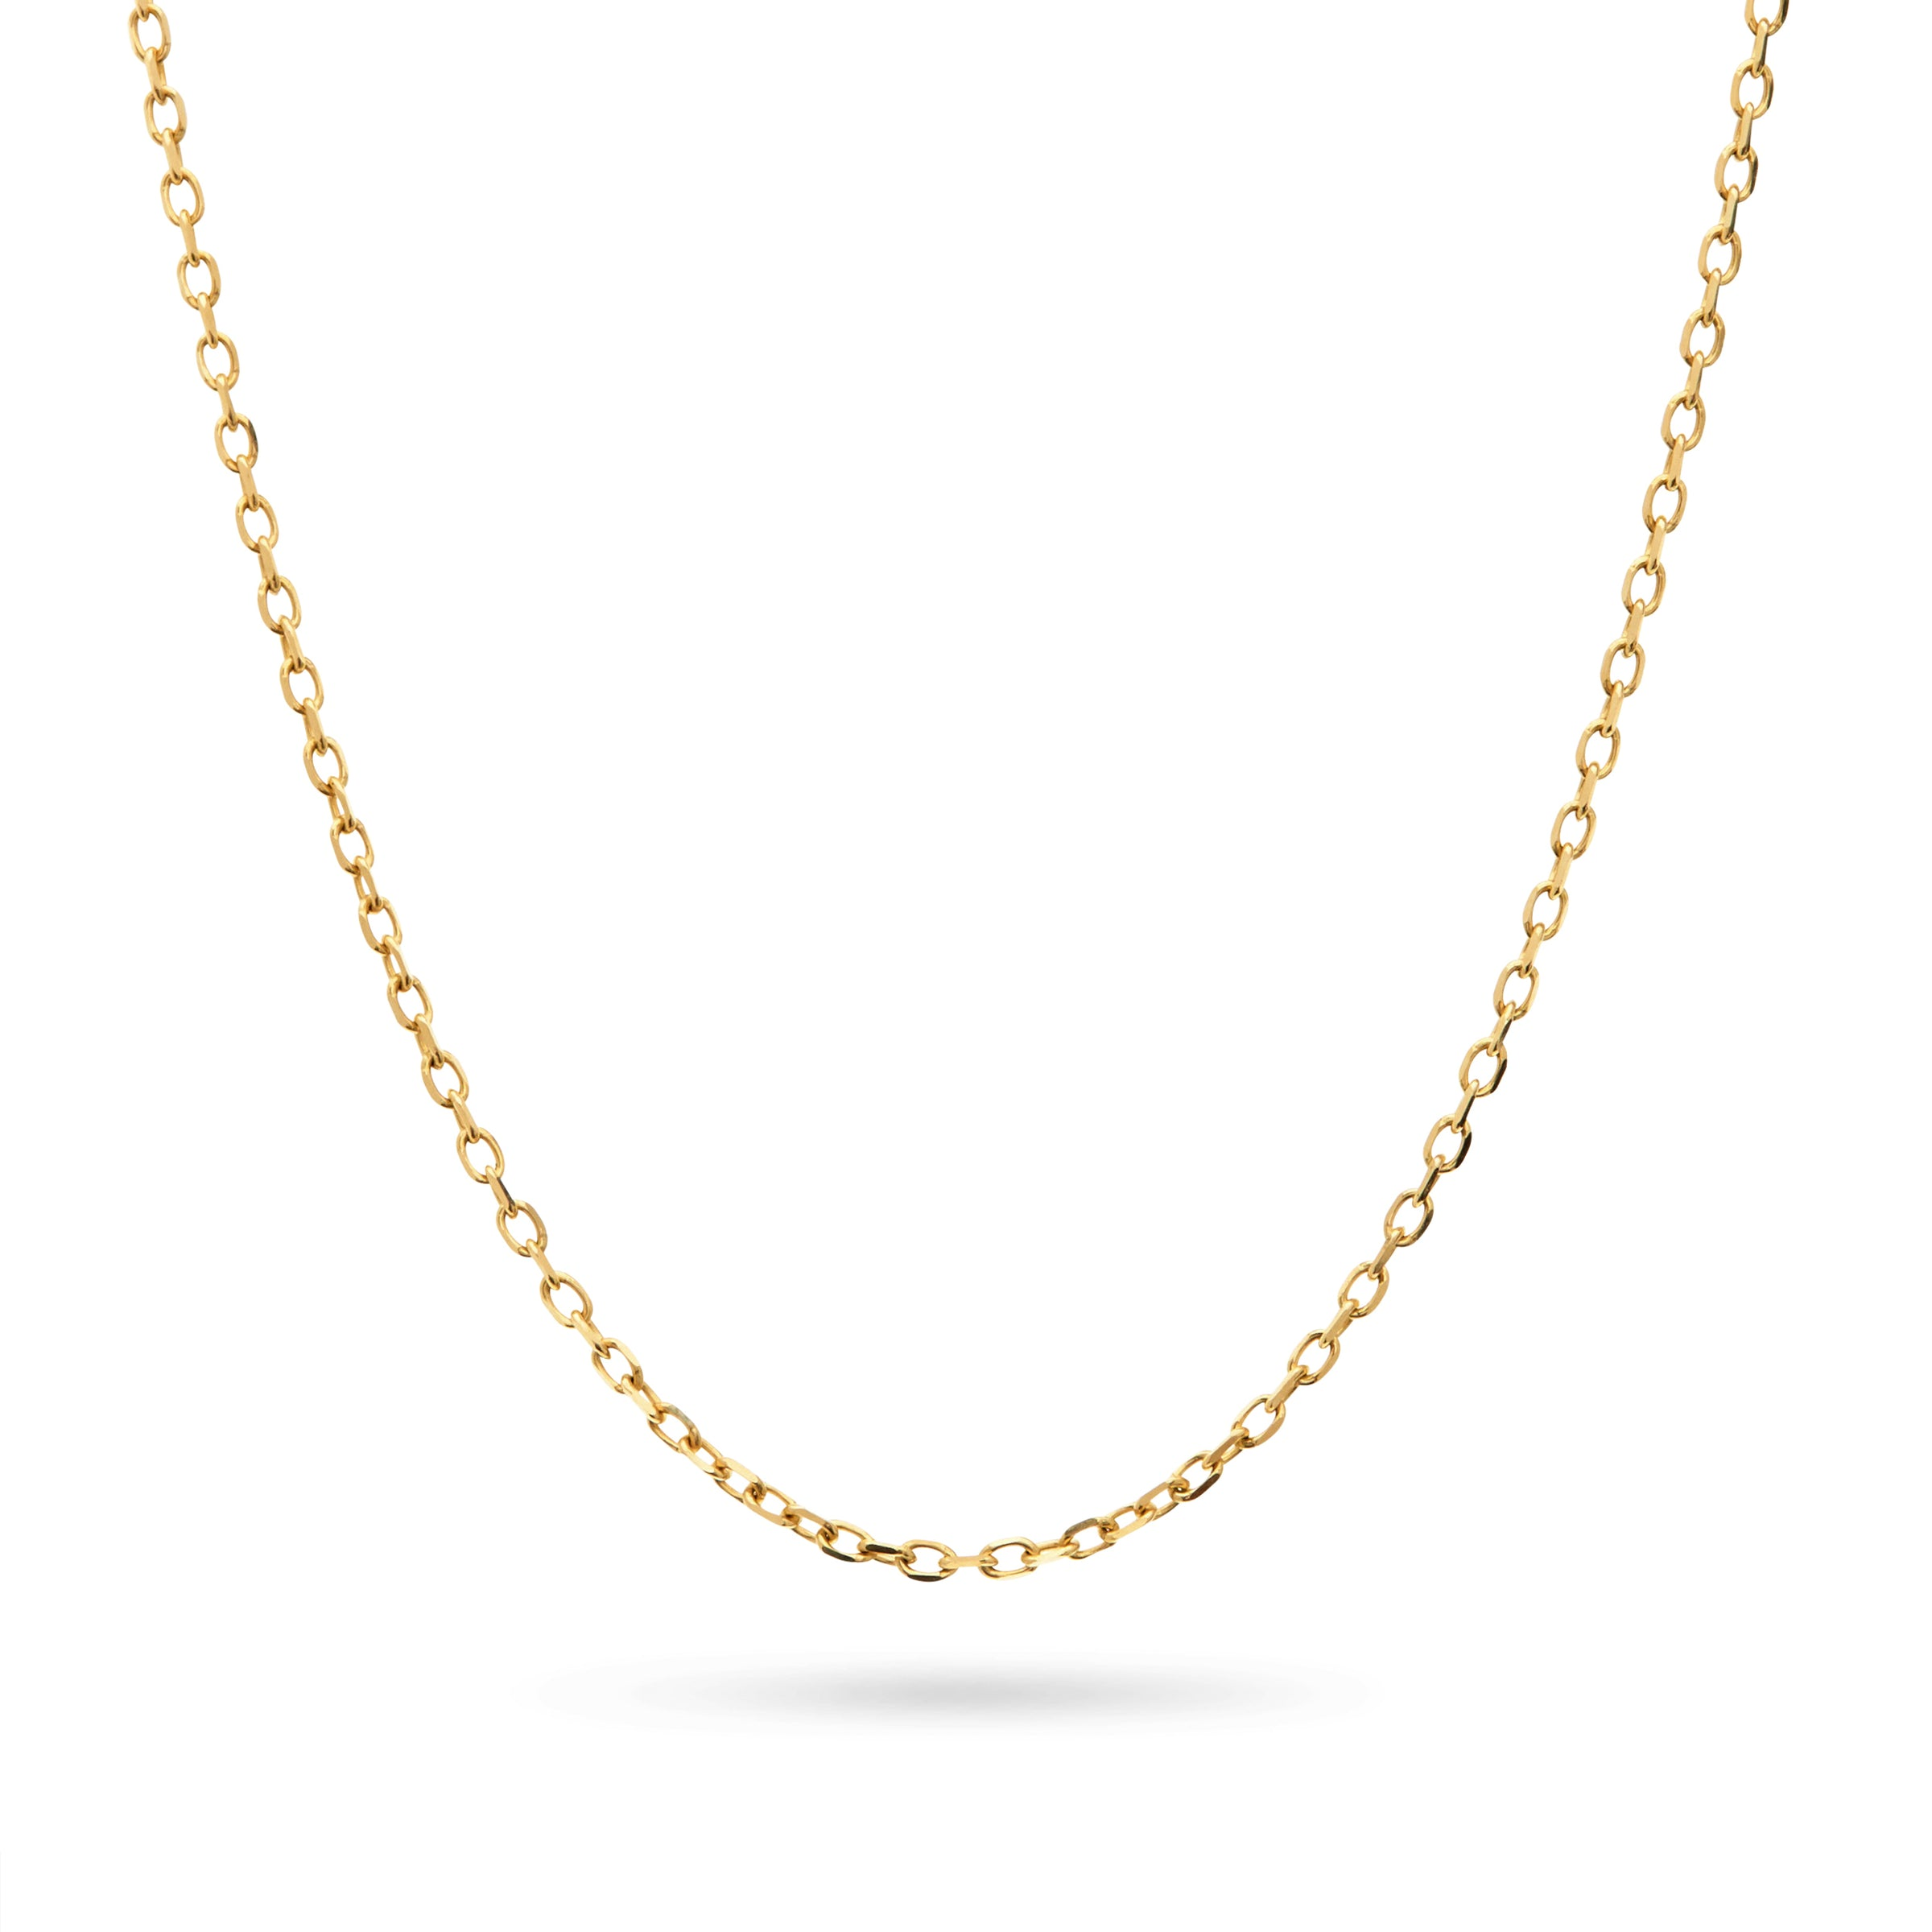 1.5mm Chain Necklace